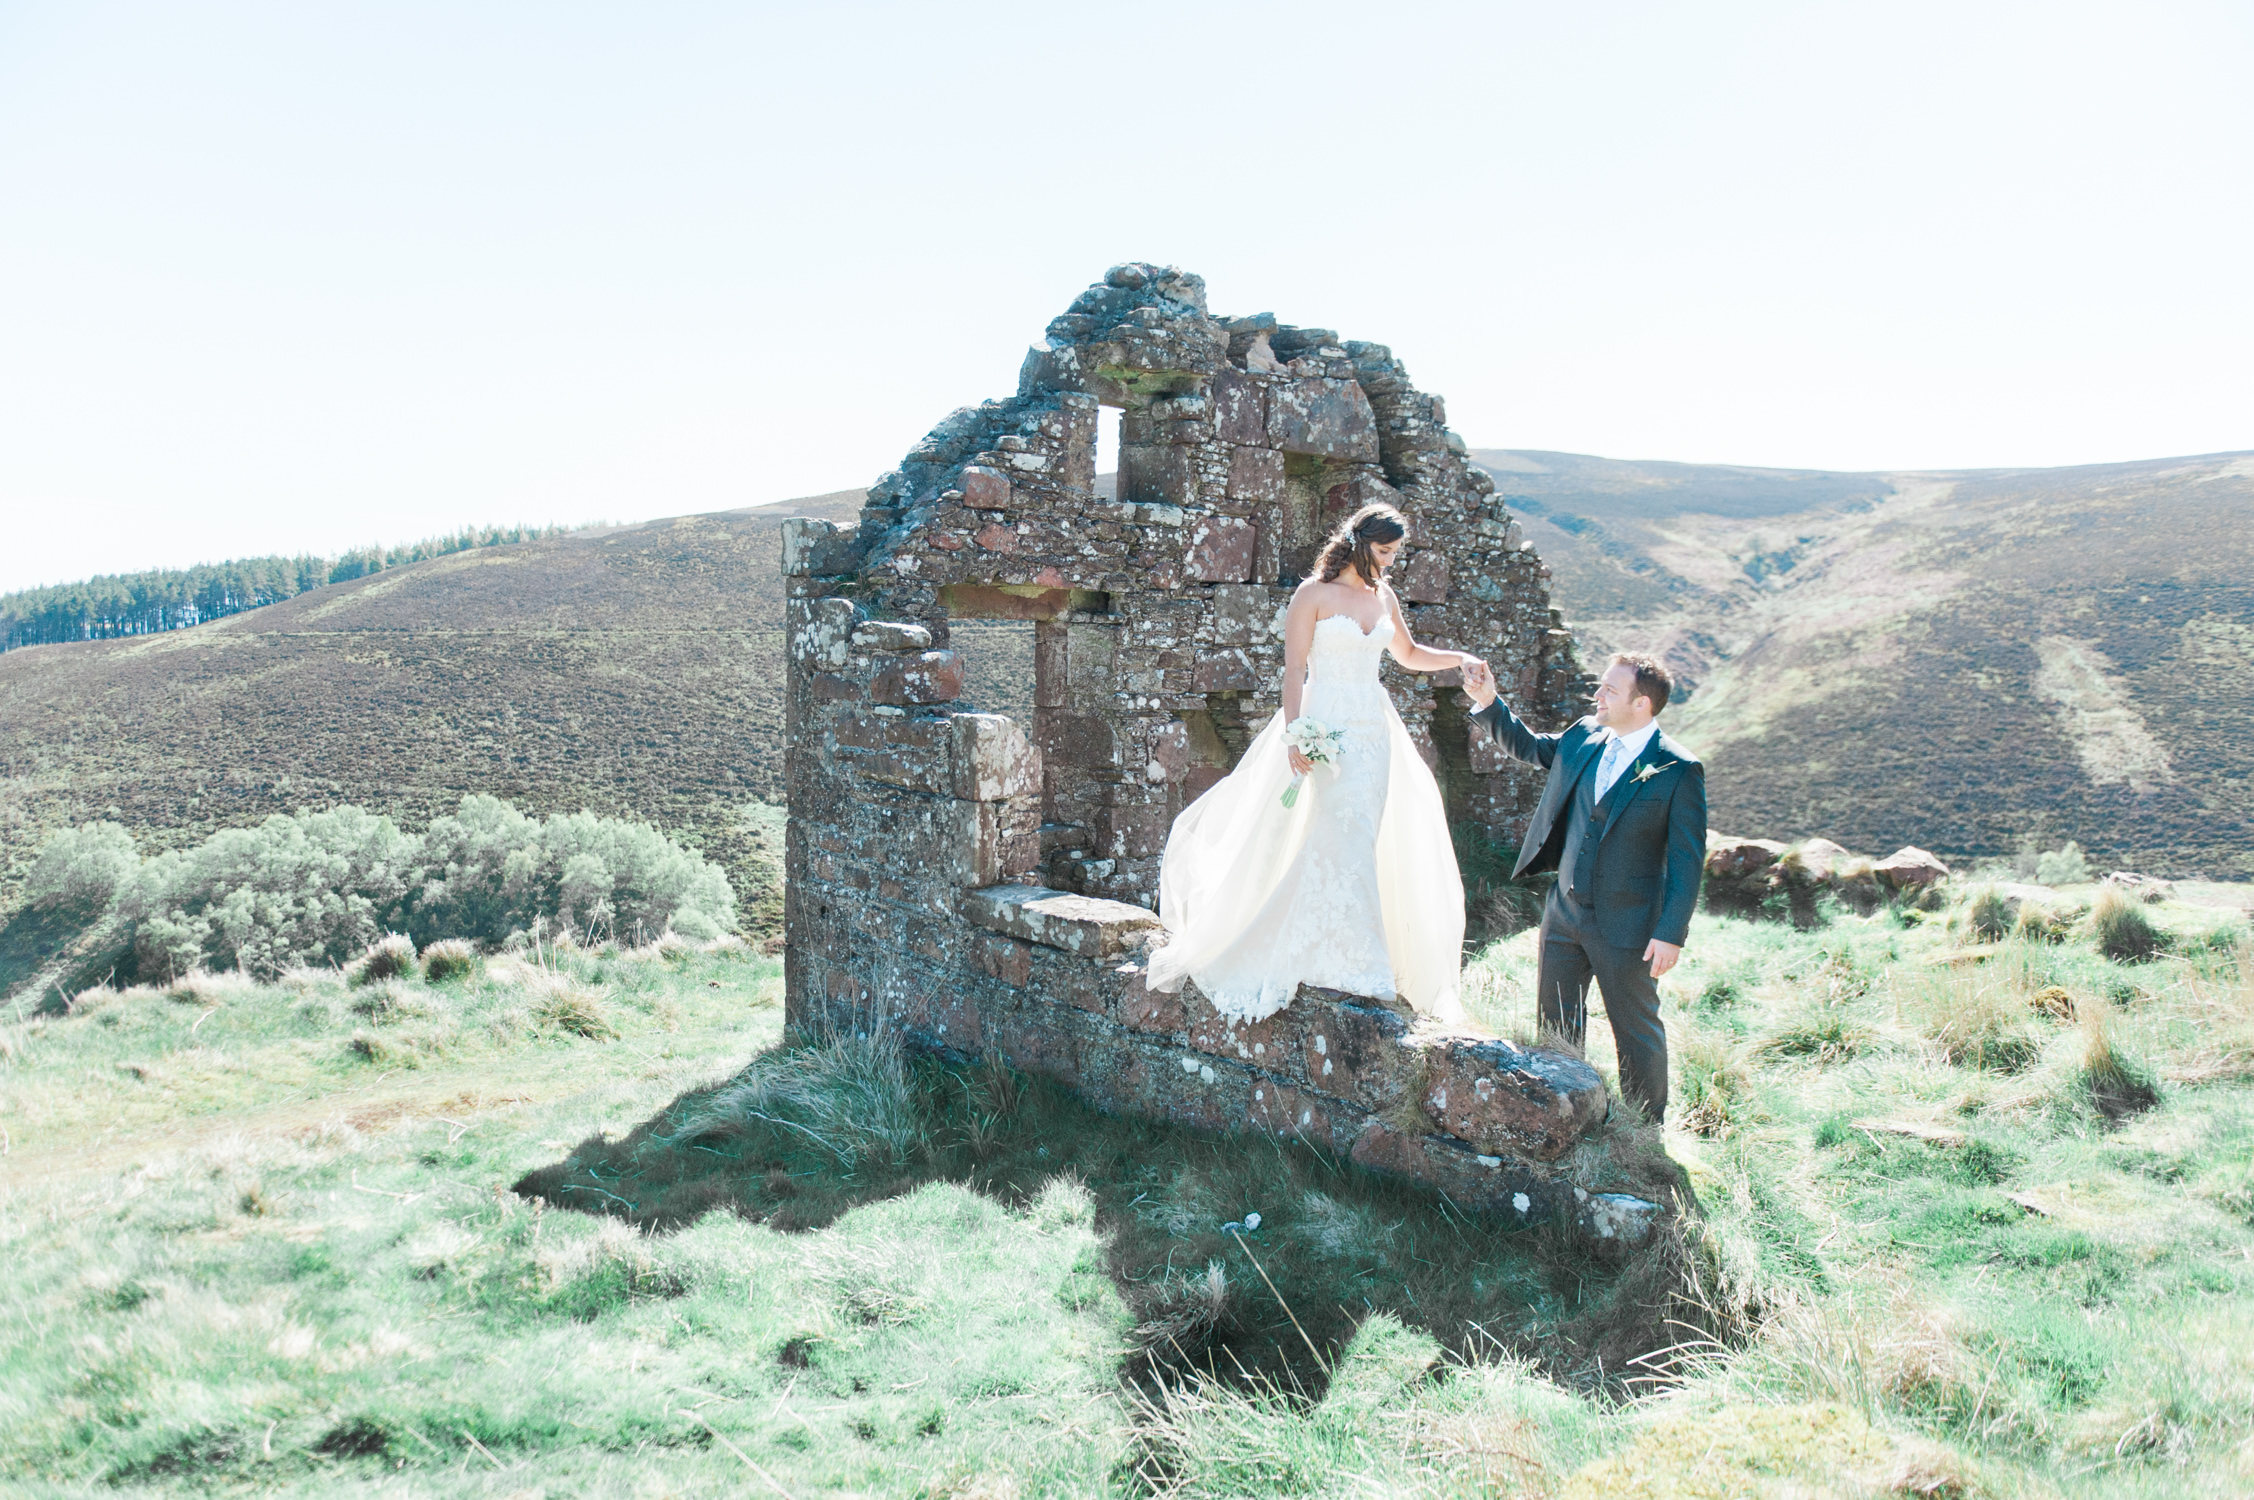 A bride and groom during their wedding photo shoot at a ruin in Scotland